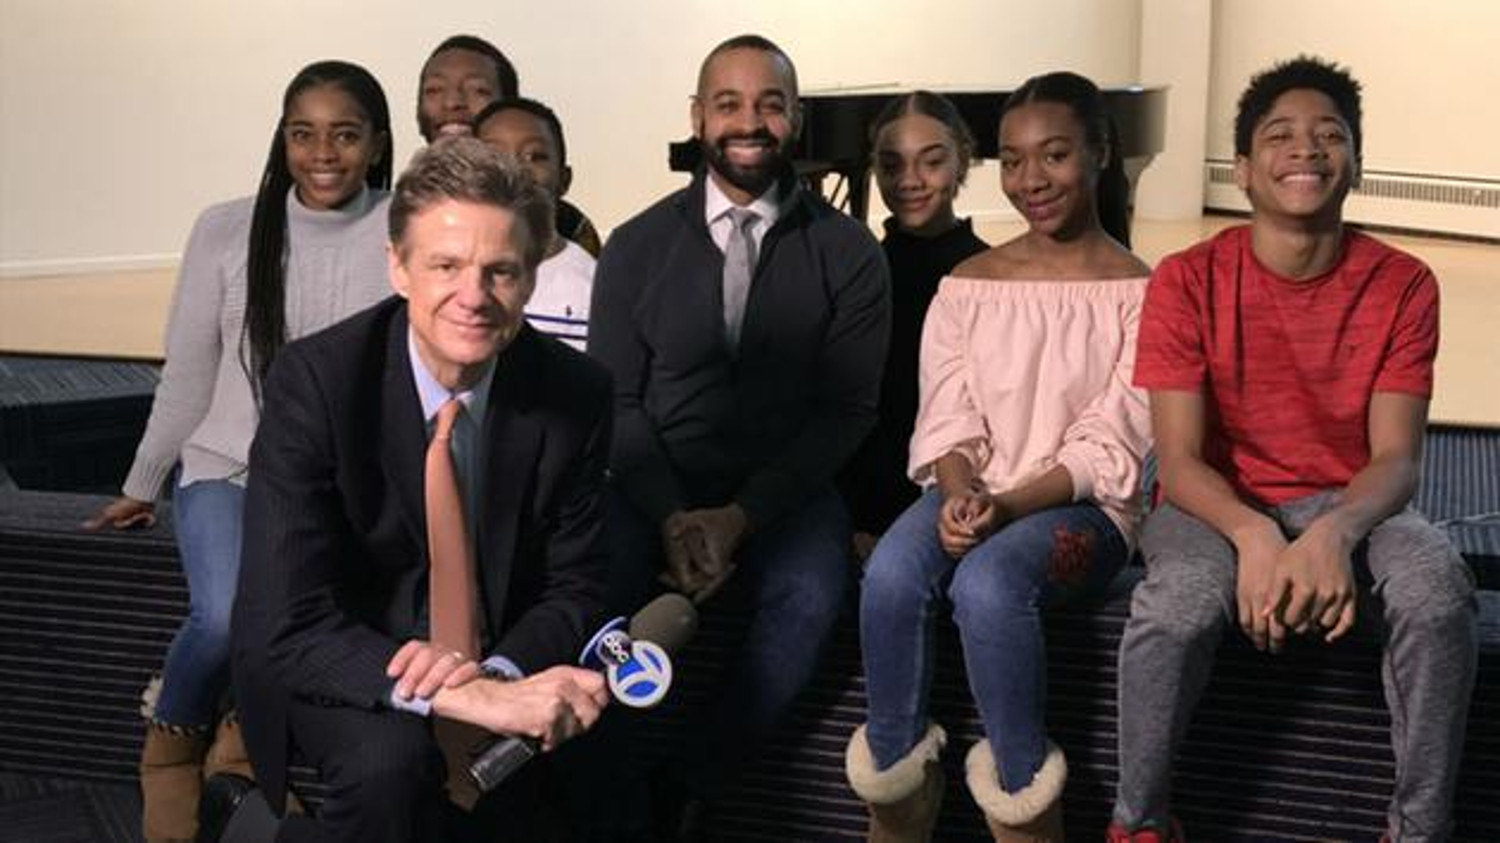 MORE THAN JUST A BOX OFFICE HIT: HARLEM STUDENTS SHARE WHY 'BLACK PANTHER' IS CULTURAL PHENOMENON